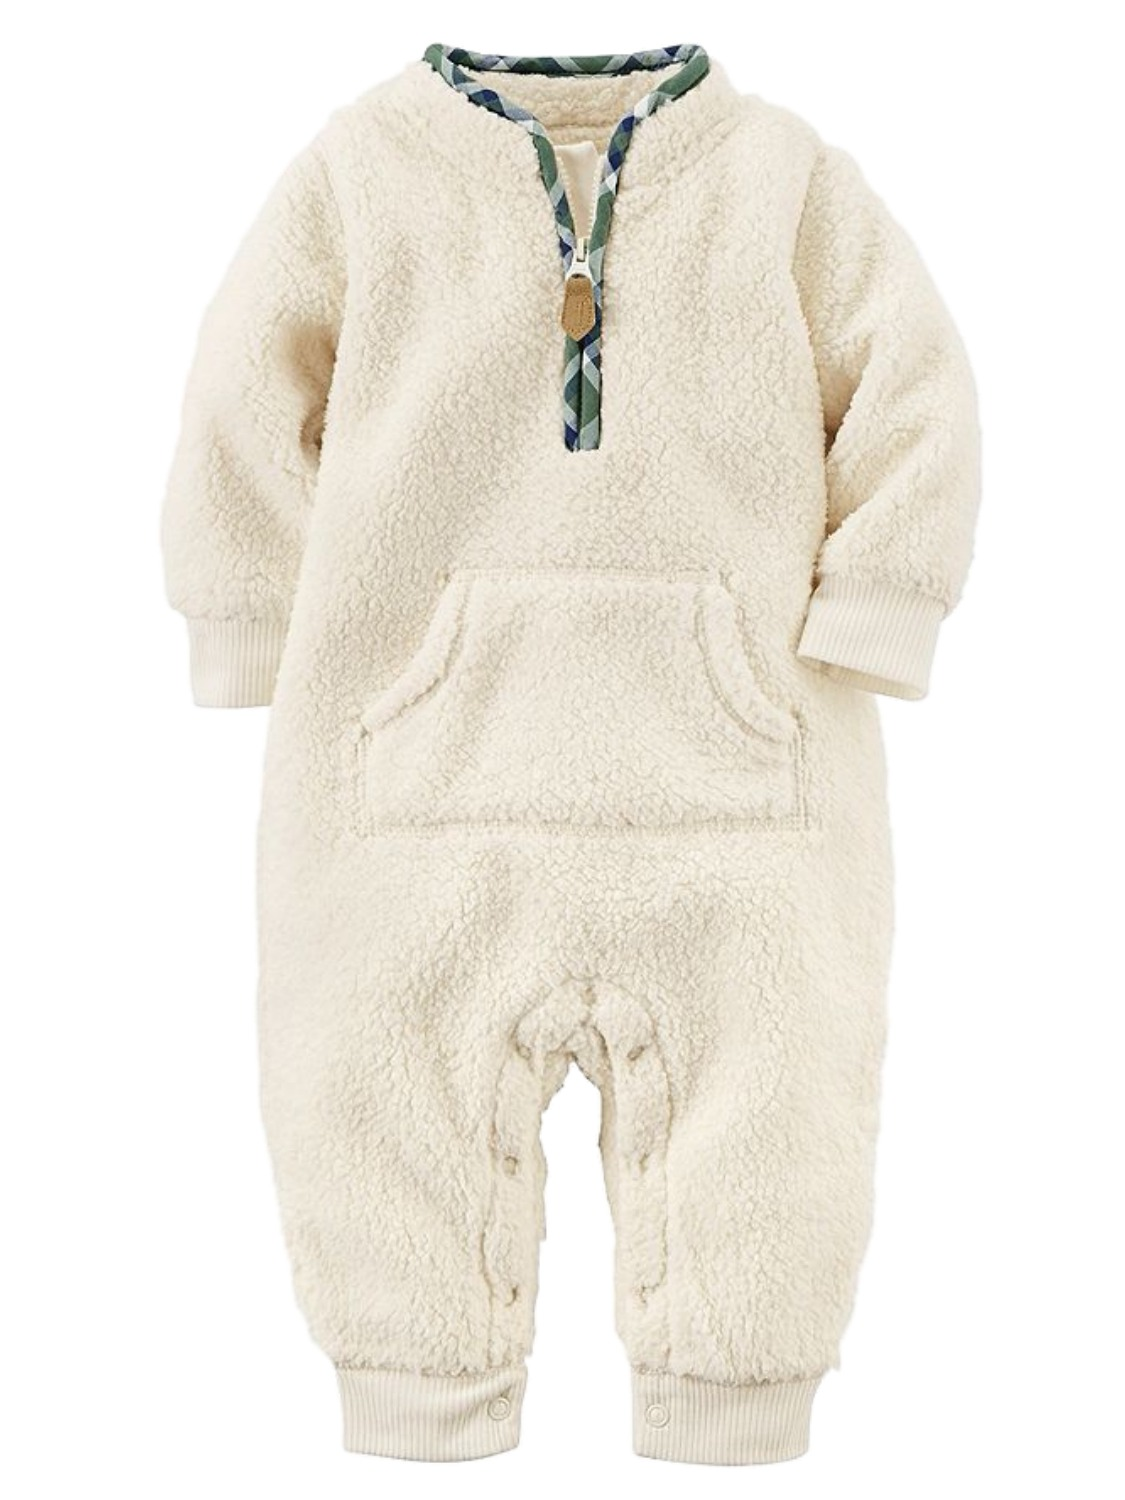 Carters Infant Boys White & Green Shepa Fleece Jumpsuit Coverall Baby Outfit